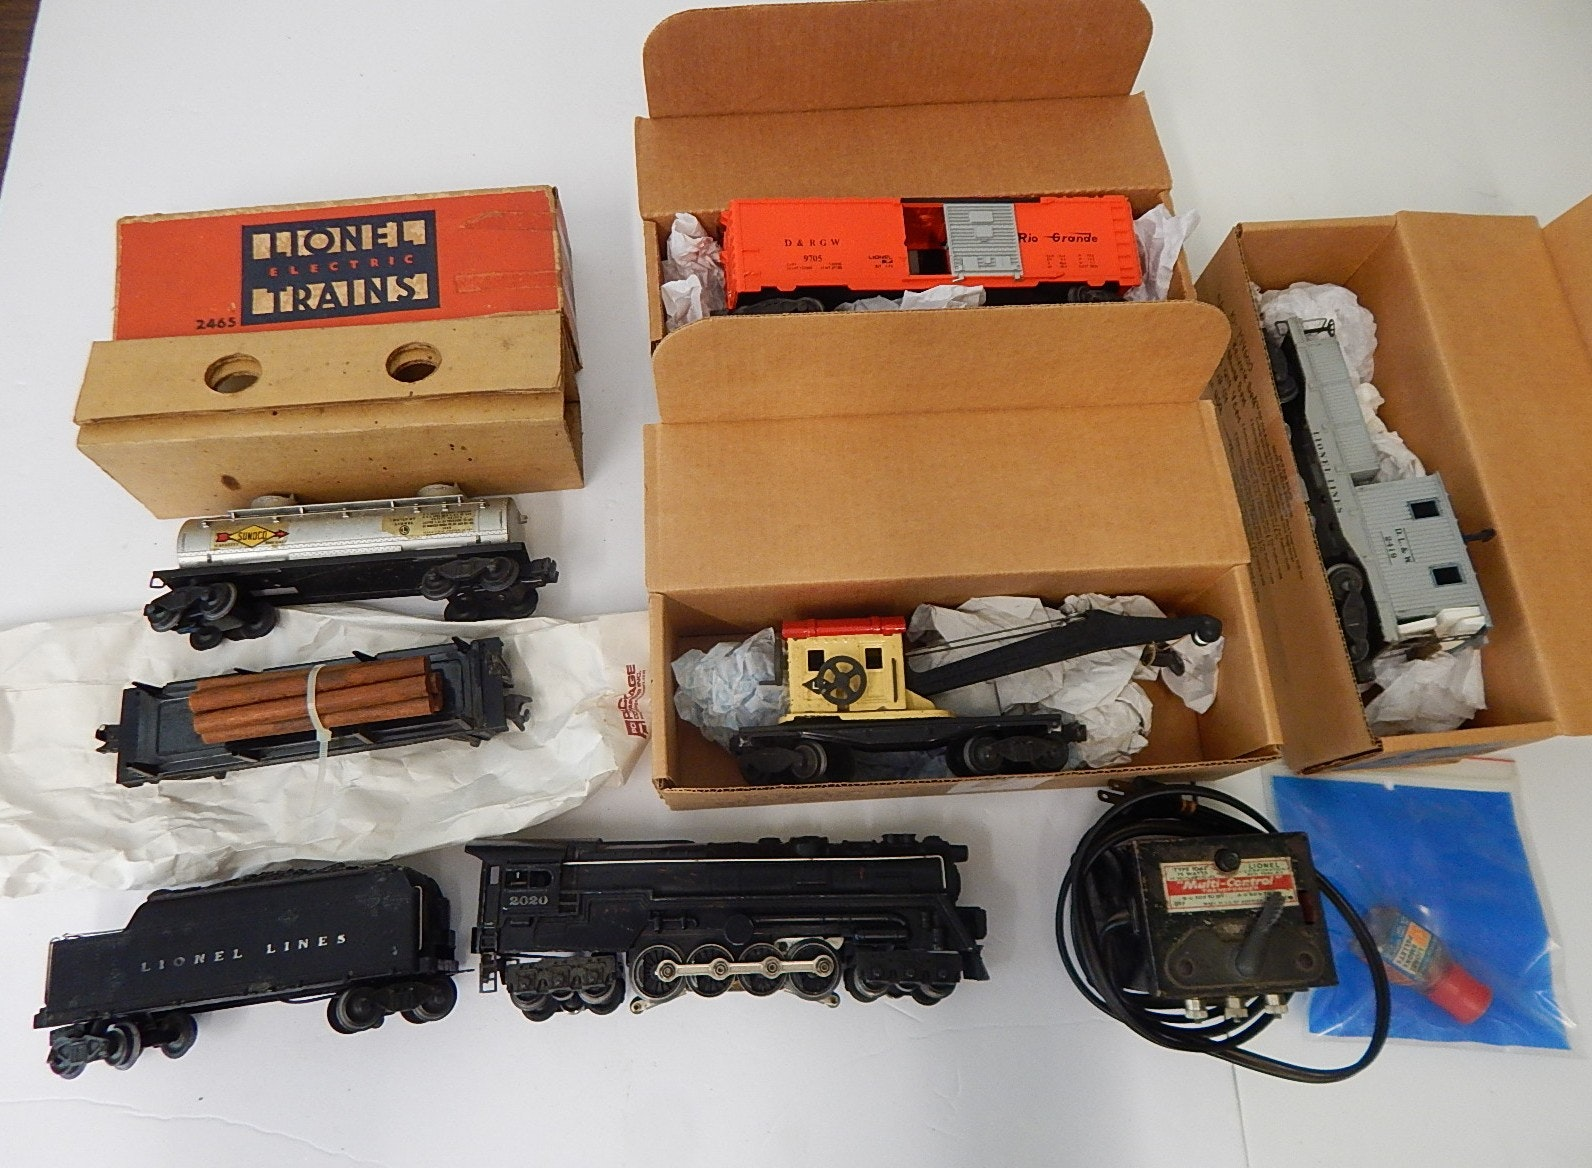 Post-War O-Gauge Train Set with Lionel, #2020 Turbine and Tender